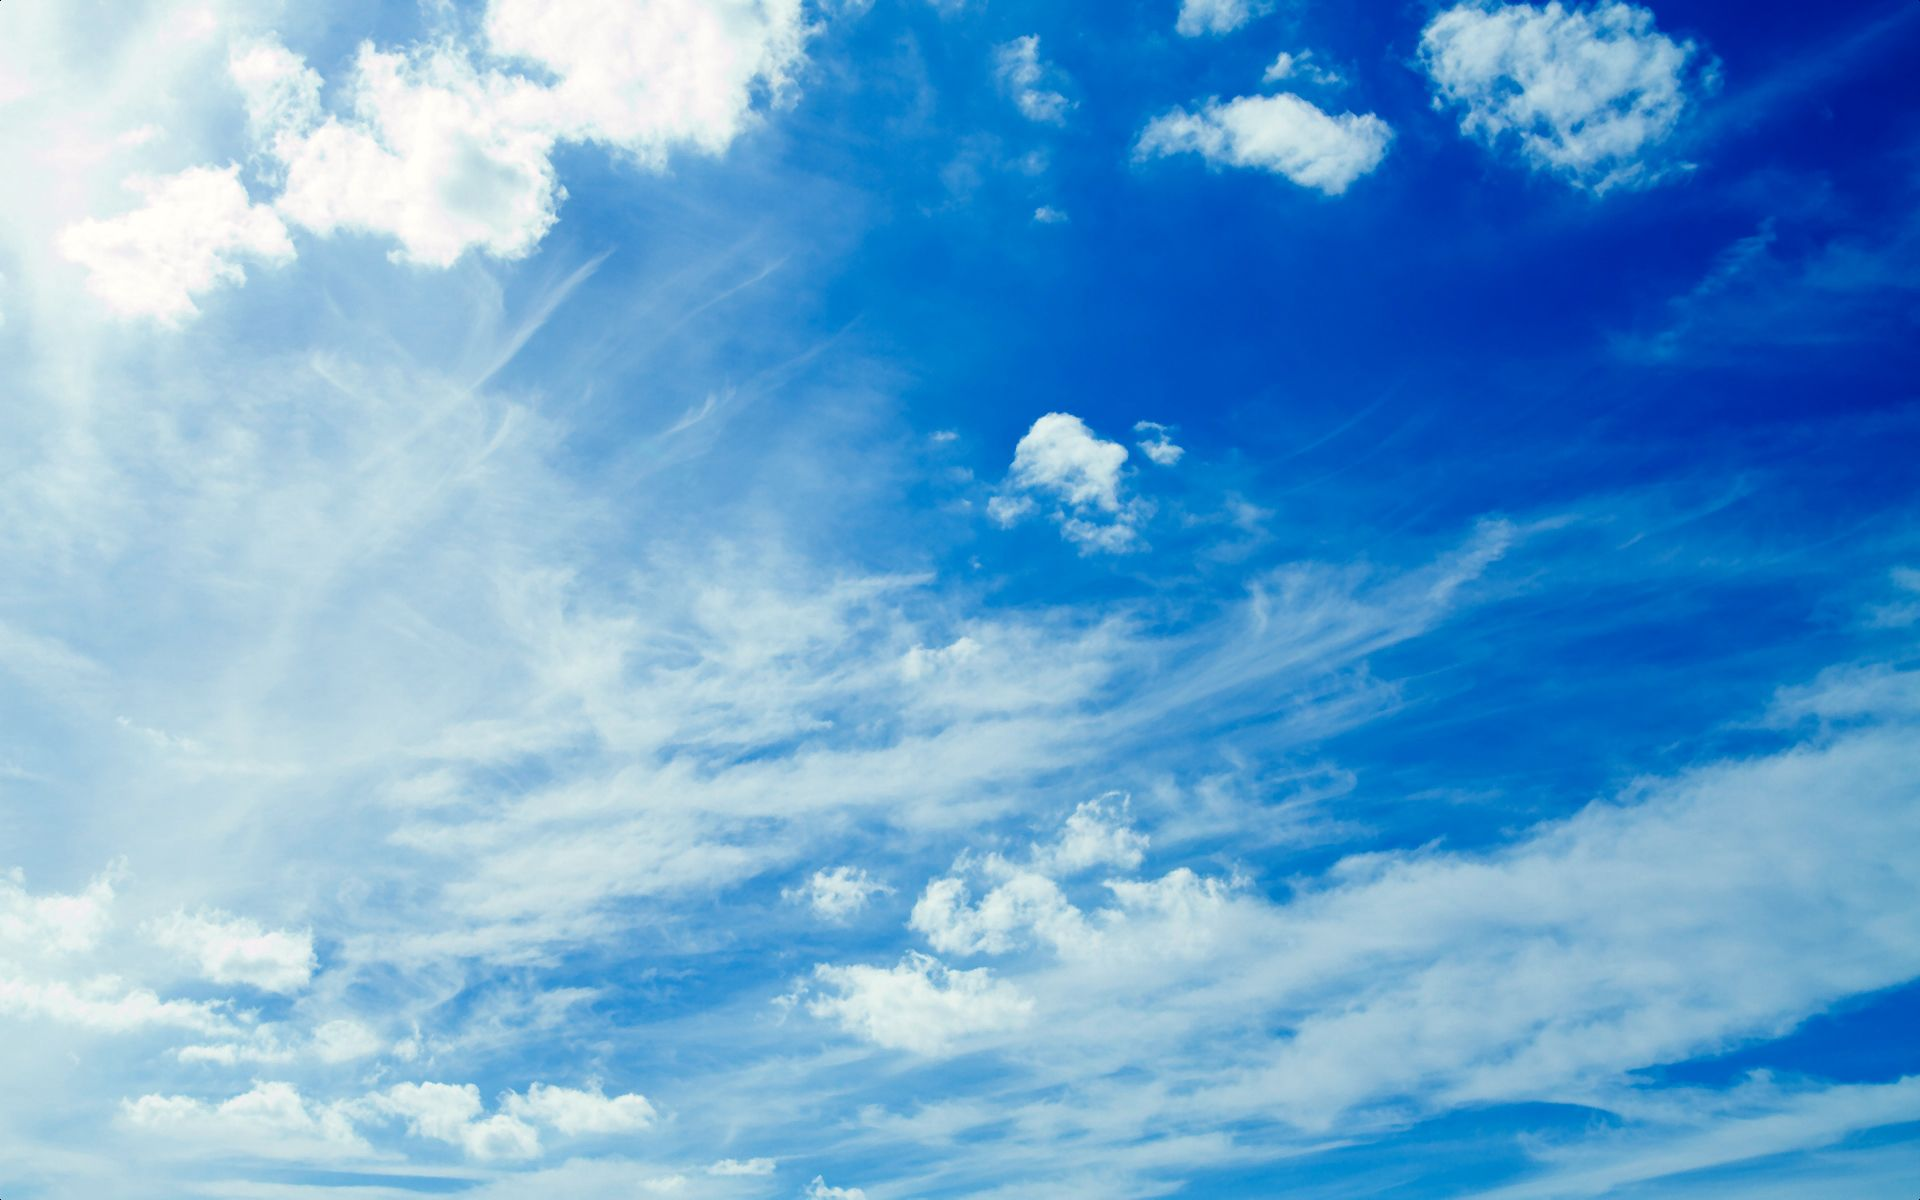 Clouds Skyscapes 1920x1200 Wallpaper Sky Wallpaper Blue Sky Wallpaper Sky Photoshop